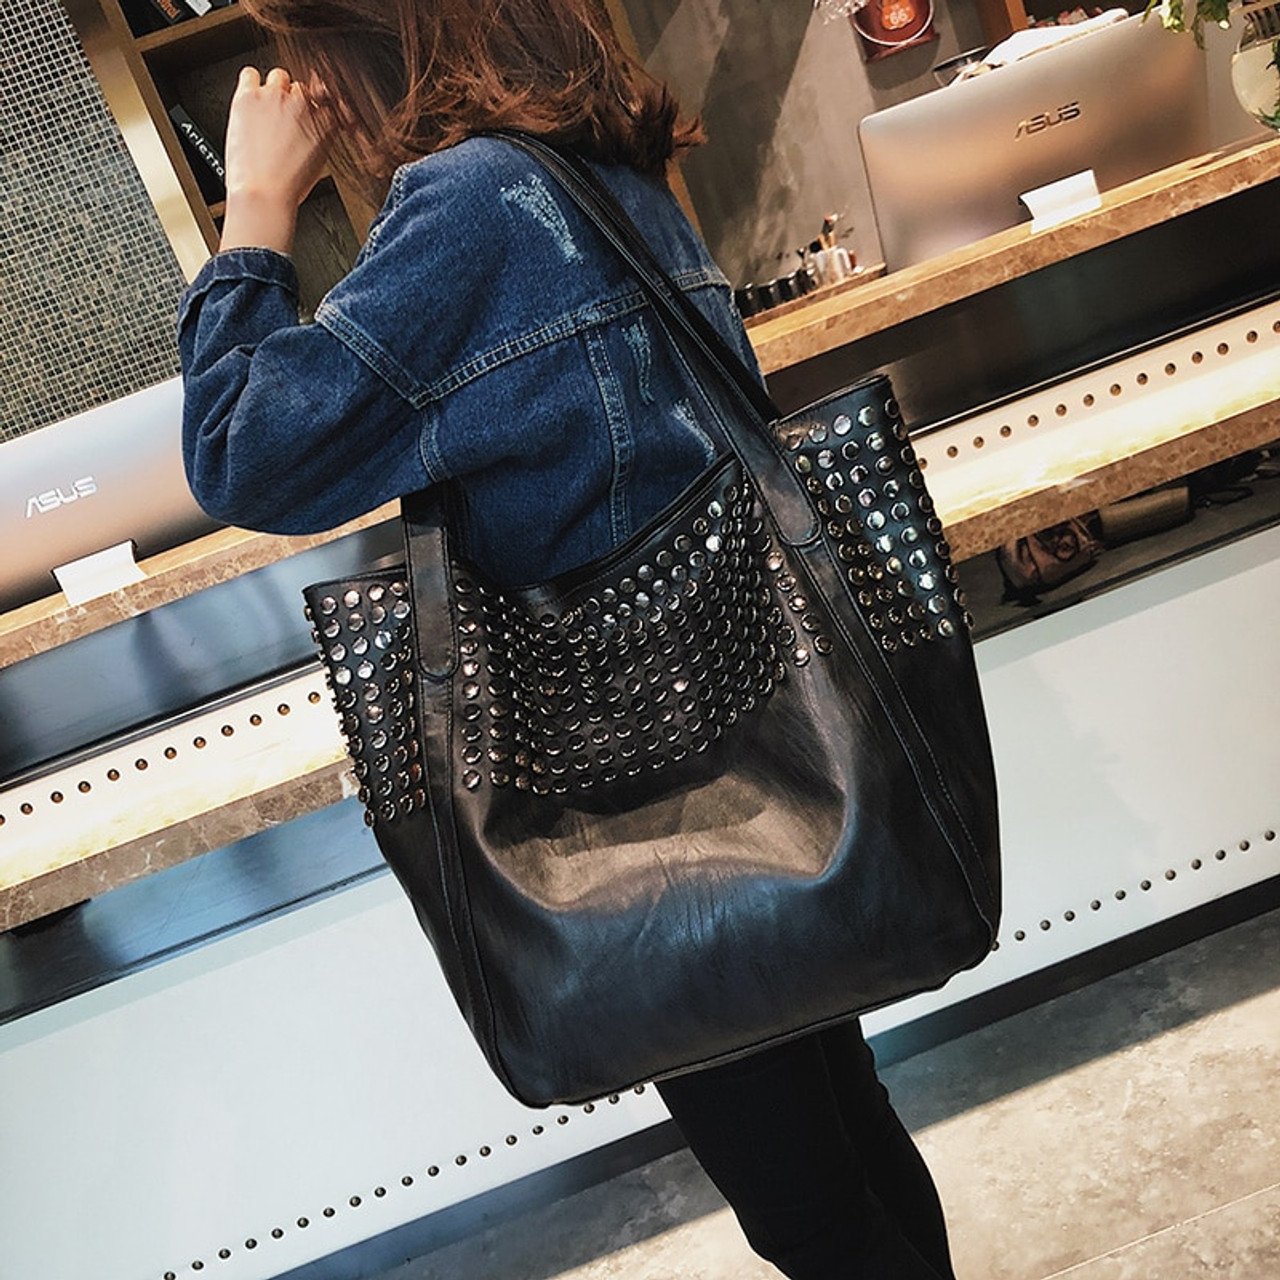 Celebrity Big Bag for Women 2018 Summer Shopper Bag Tote Rivet Large  Capacity Soft Leather Casual Black Handbag Ladies Sling Bag -  OnshopDeals.Com 864440a77cca4